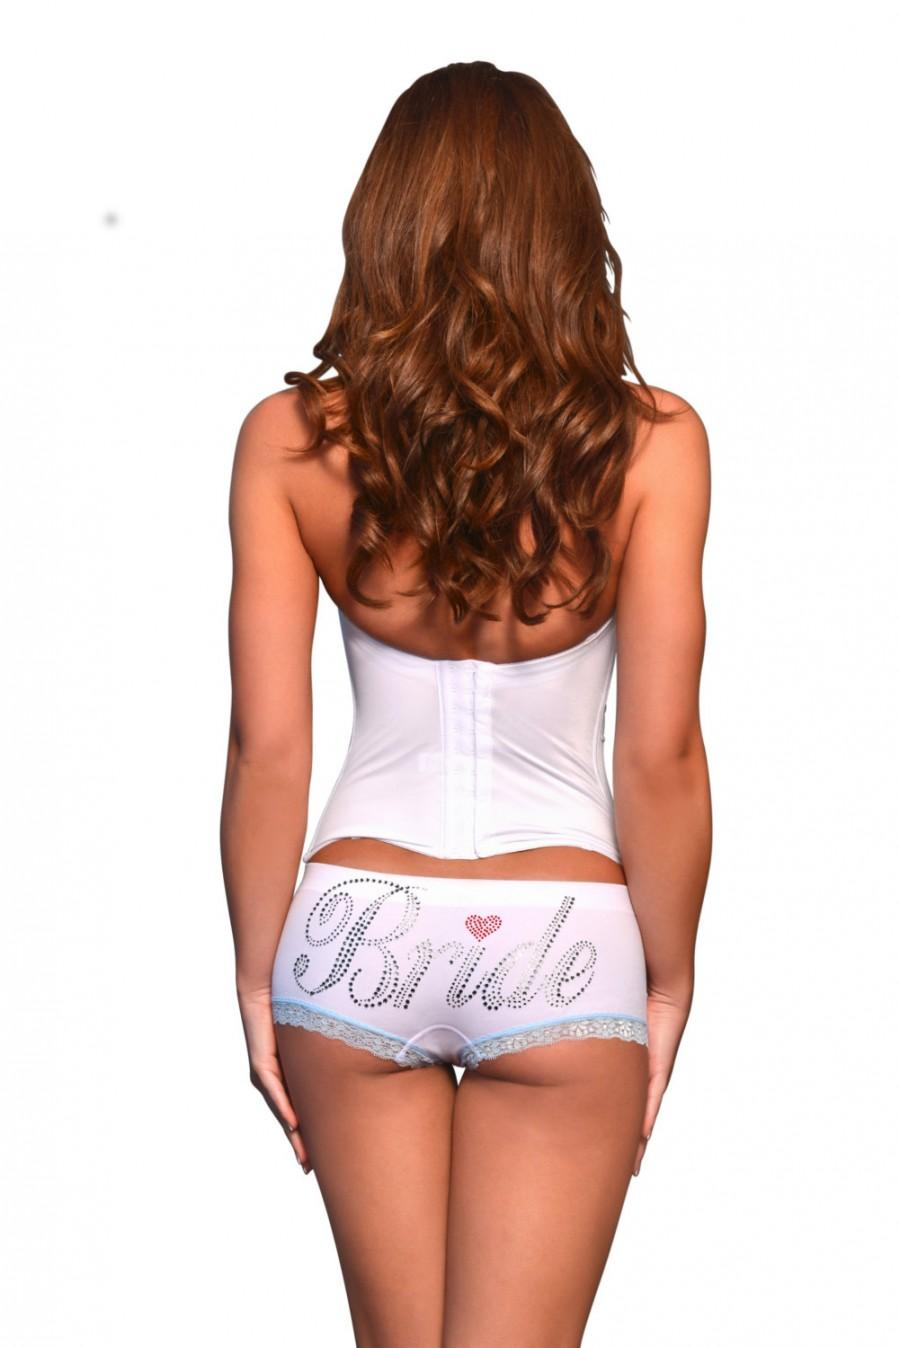 Boda - Bride Underwear White and Blue with Rhinestone Bride wedding day underwear